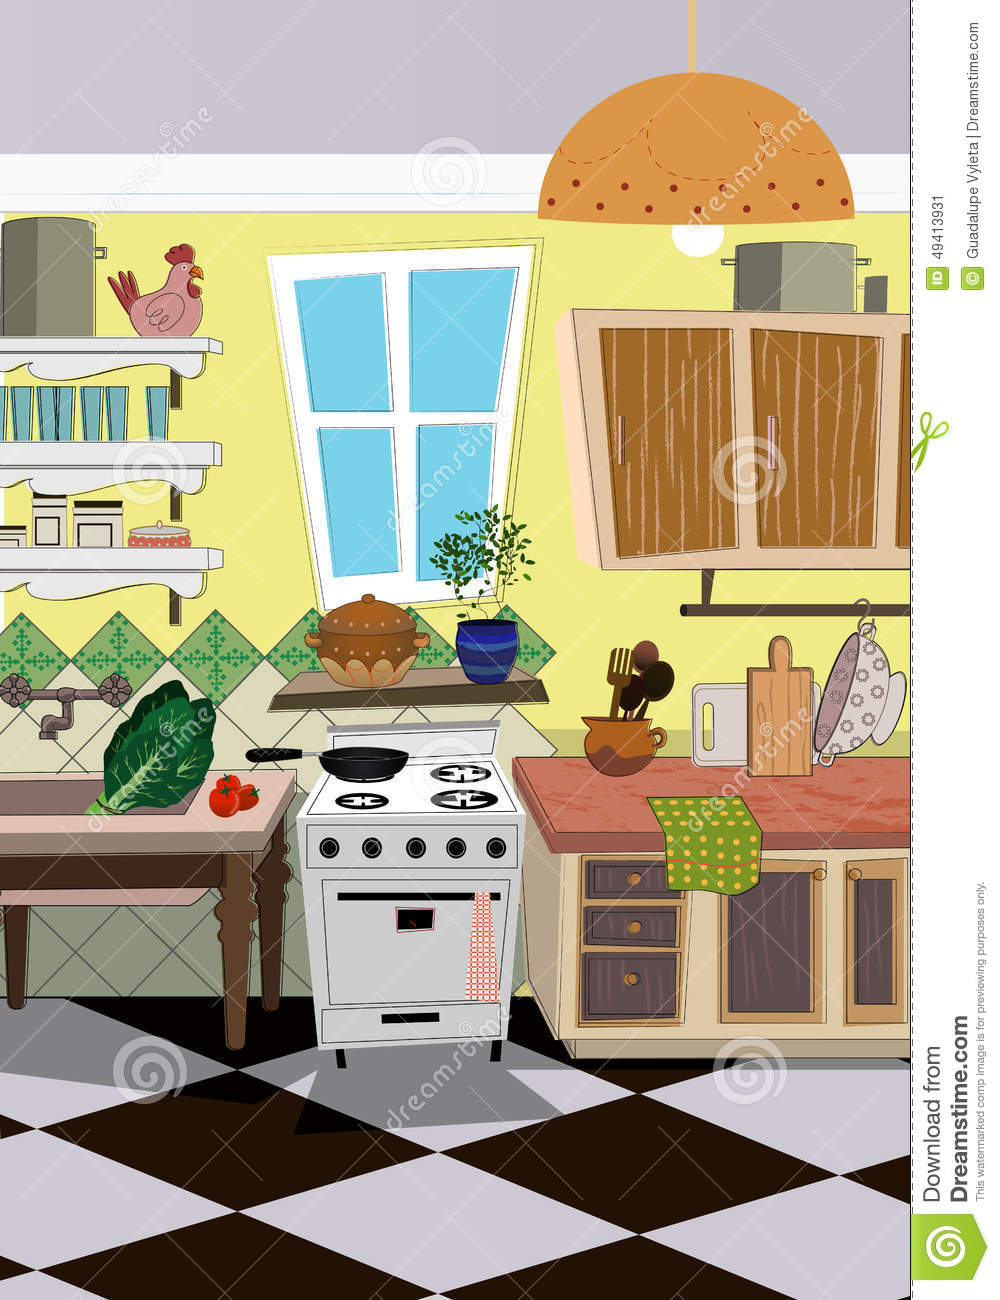 kitchen cartoon background